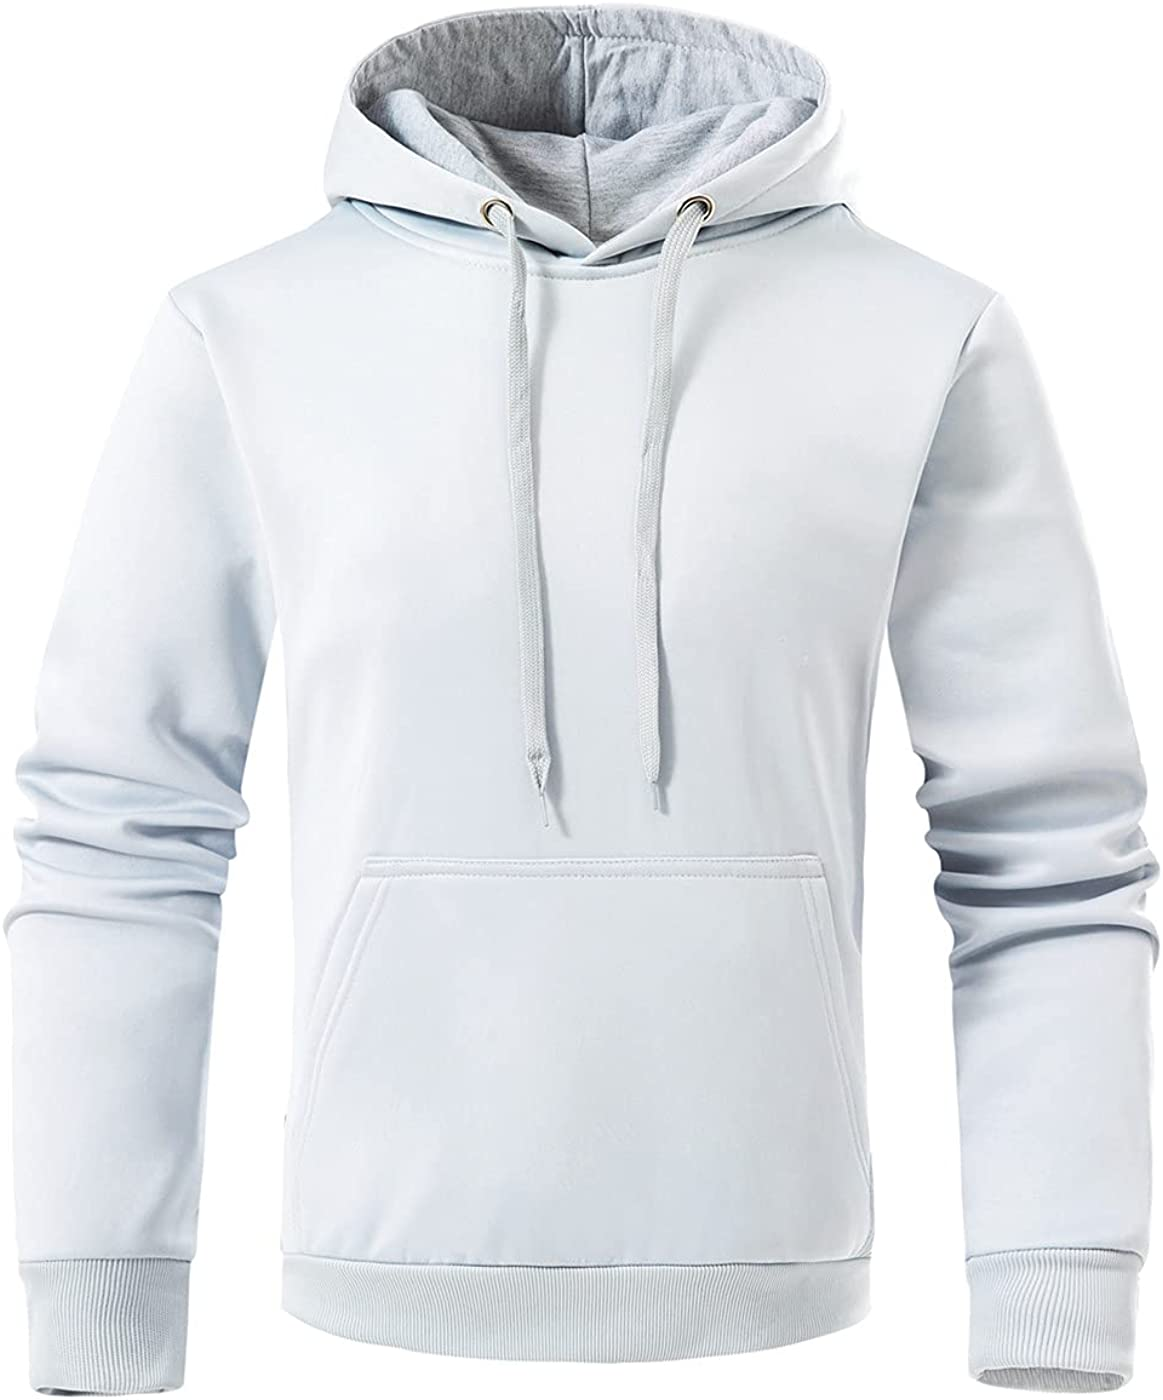 JiangWu Men's Ranking TOP19 Novelty Pullover Casual Fleece Lightweight Hoodie New products world's highest quality popular